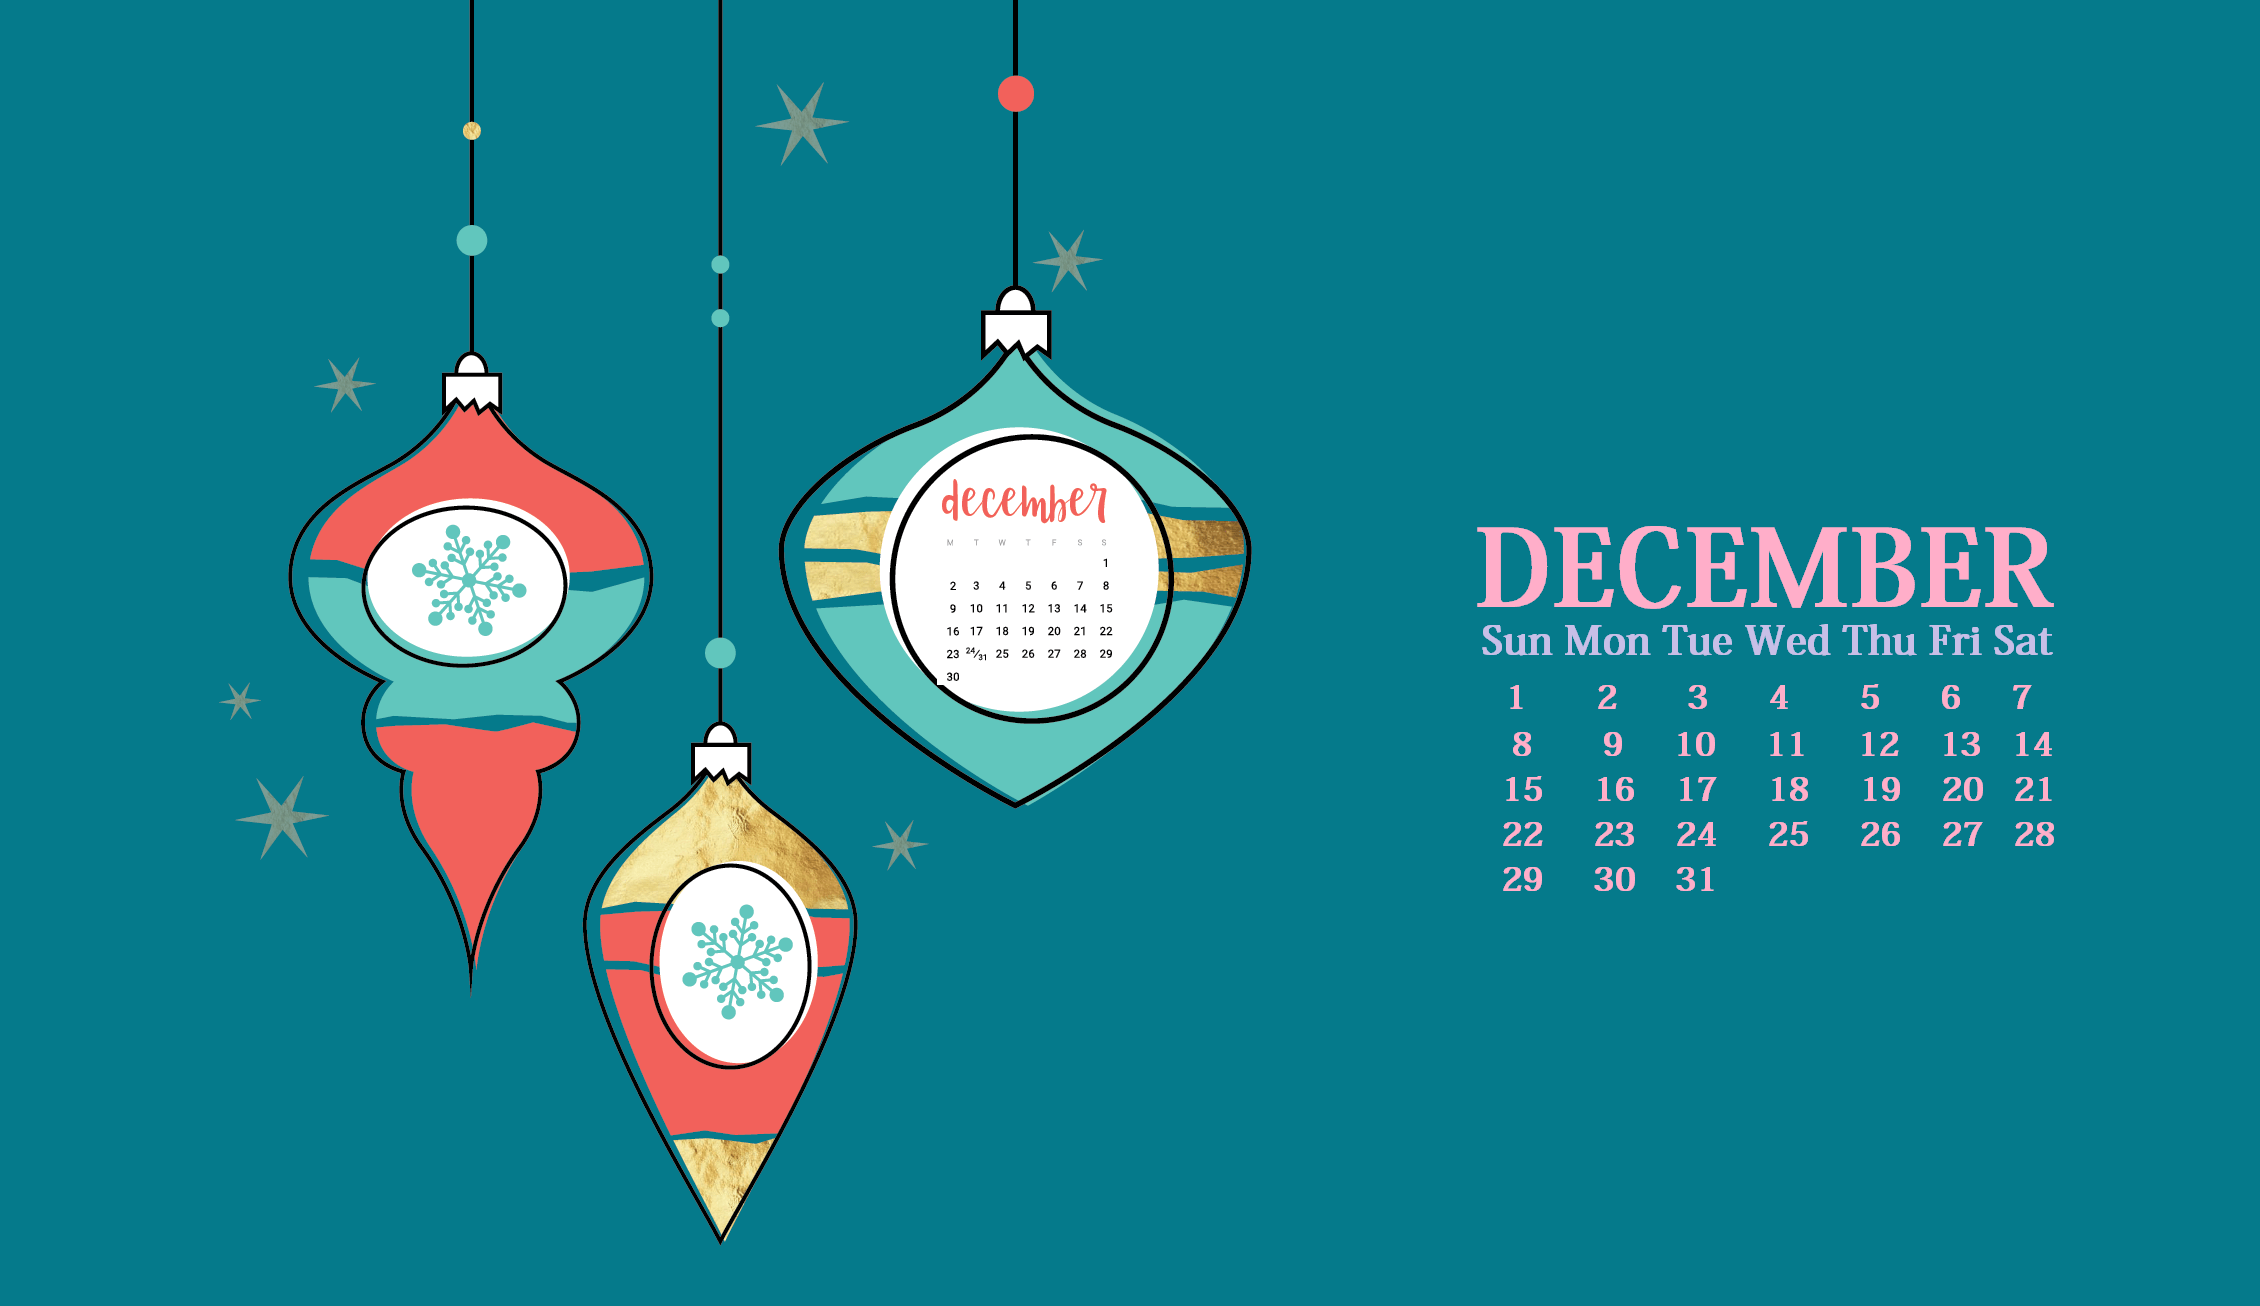 December 2019 Calendar Movies December 2019 HD Wallpaper Calendar | Wall Calendar in 2019